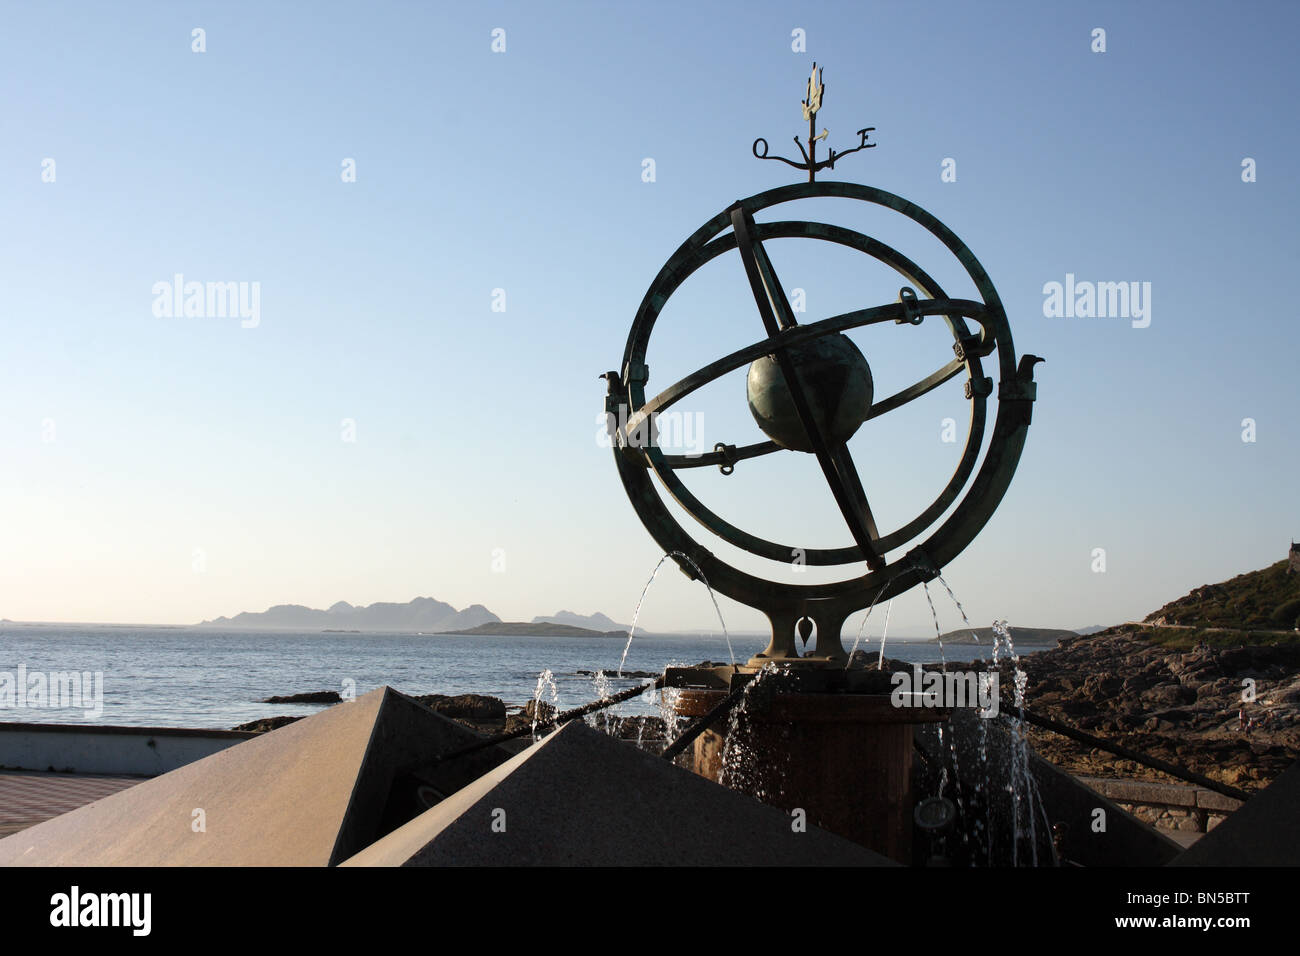 Globe sculpture fountain and view to Islas Cies, Baiona, Bayona, Galicia, Spain - Stock Image